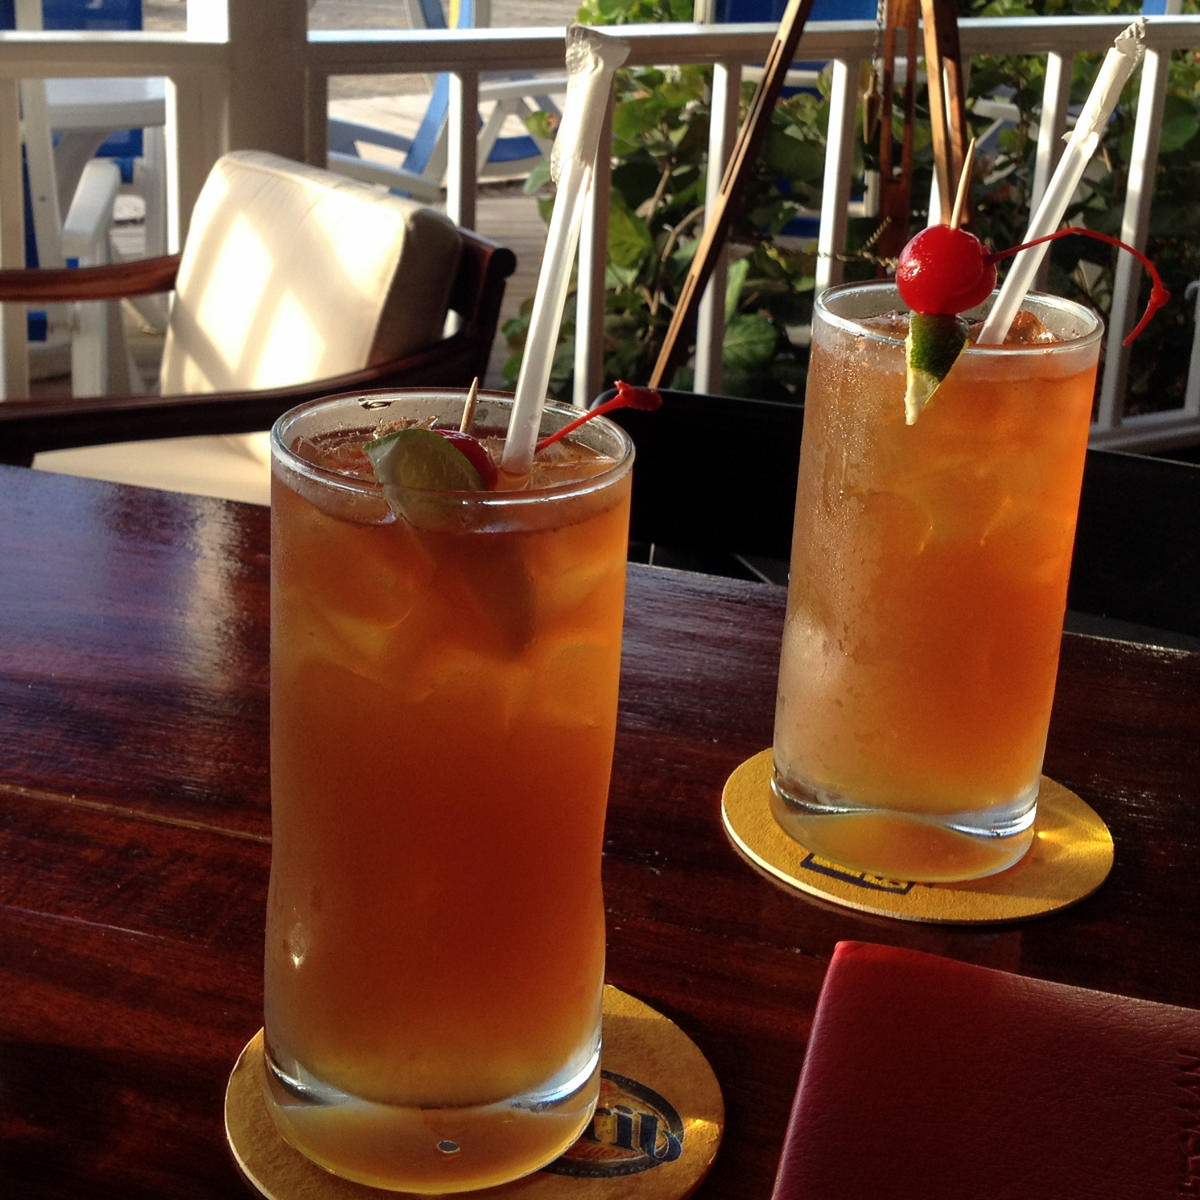 Rum is Made From Sugarcane Byproducts